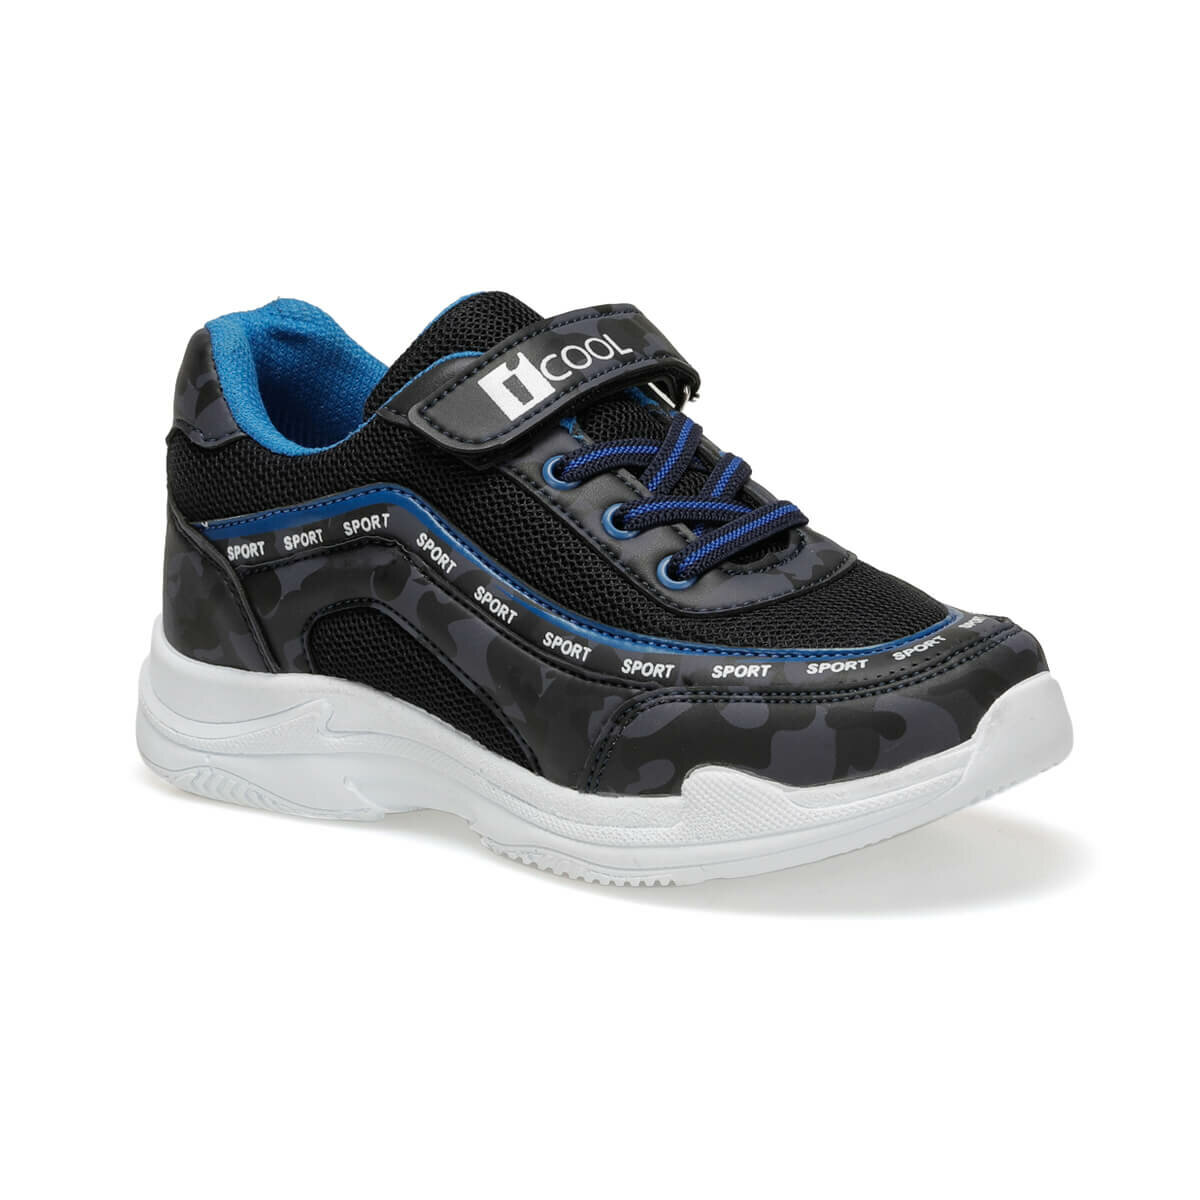 FLO CHUNKY Black Male Child Hiking Shoes I-Cool